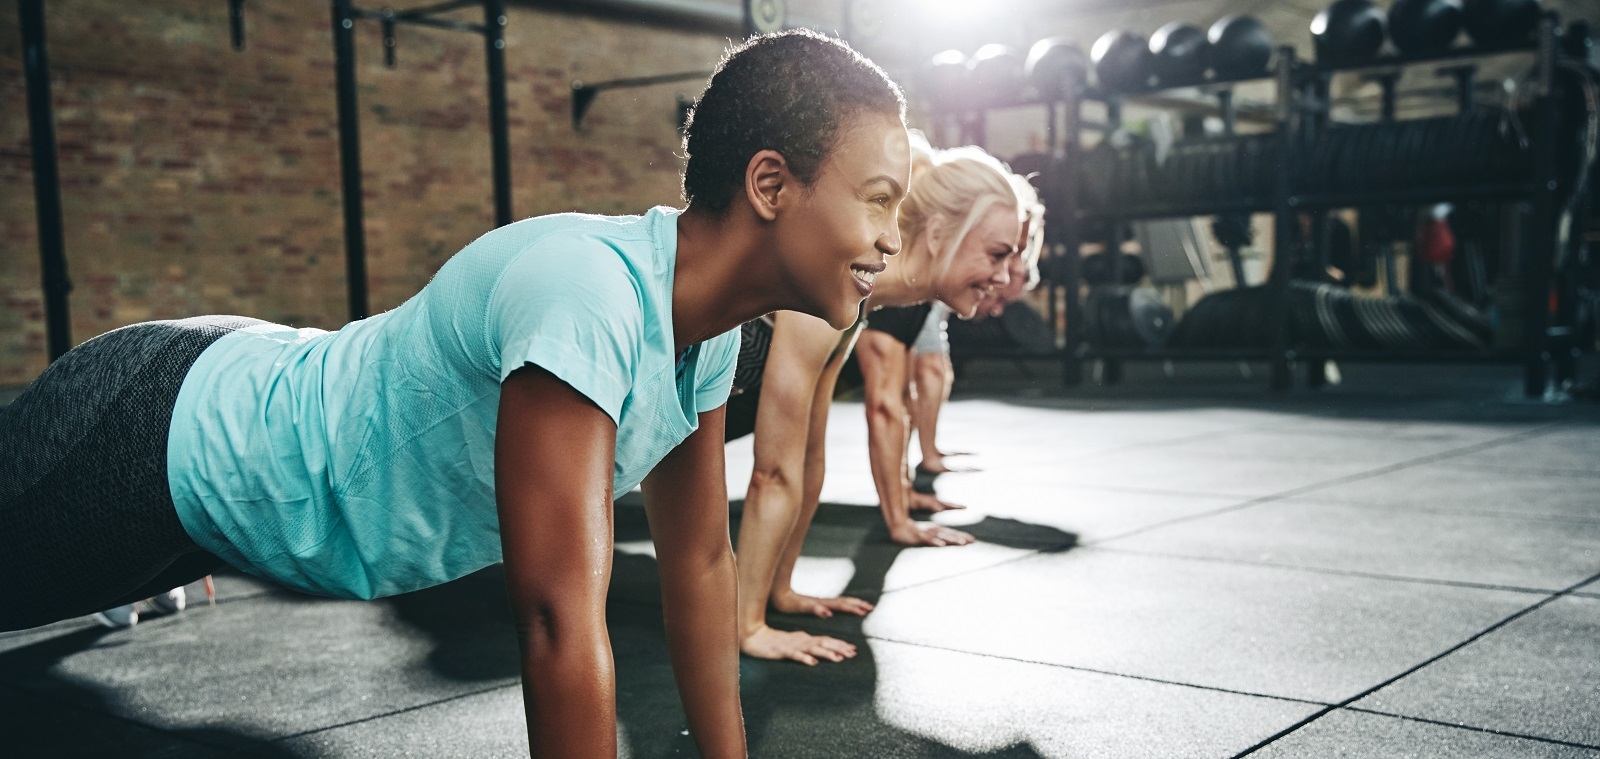 Smiling young African American woman in sportswear doing pushups at the gym with a group of friends during an exercise class; Shutterstock ID 1336697780; Project Title: FY20 Q1 Phase 3 Perspectives Images; Job: CR21702_Q2_Perspectives_Images; Client Cross-Charge: 1001-2040-682677; Team + Client Name: Rachael Henke-Brand Campaigns